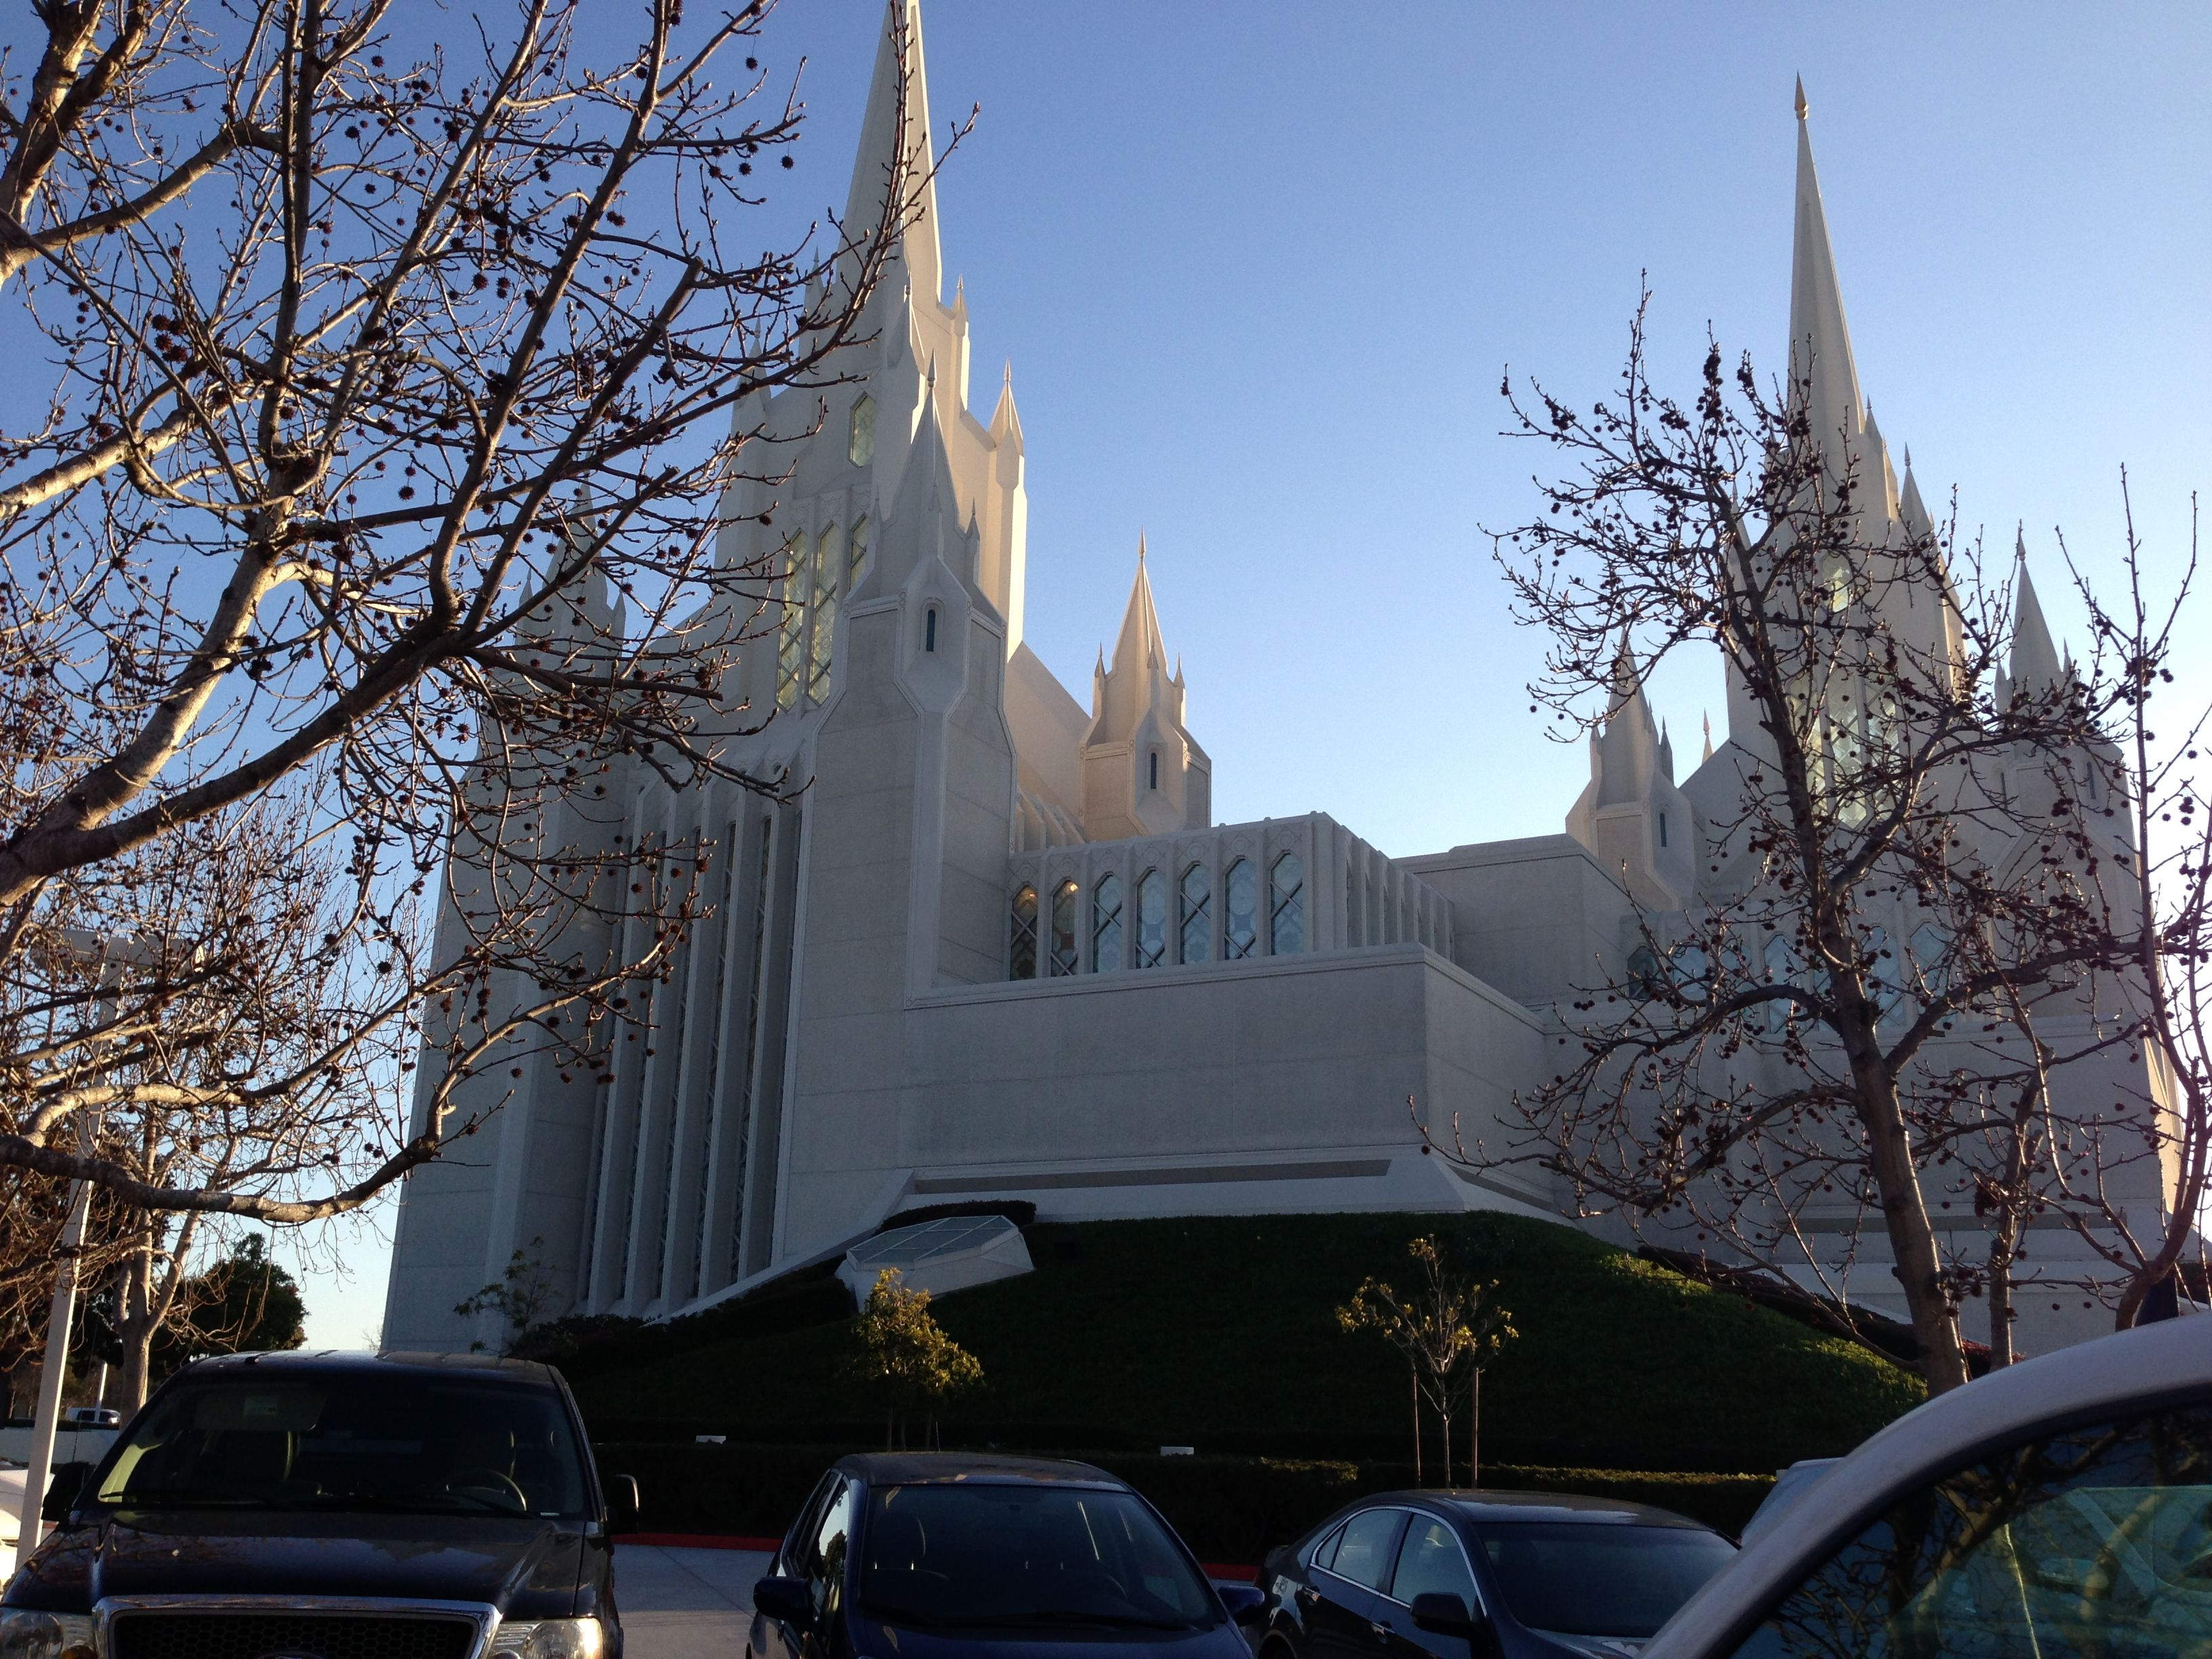 Always go to the temple. Always have the temples in sight. The San Diego temple